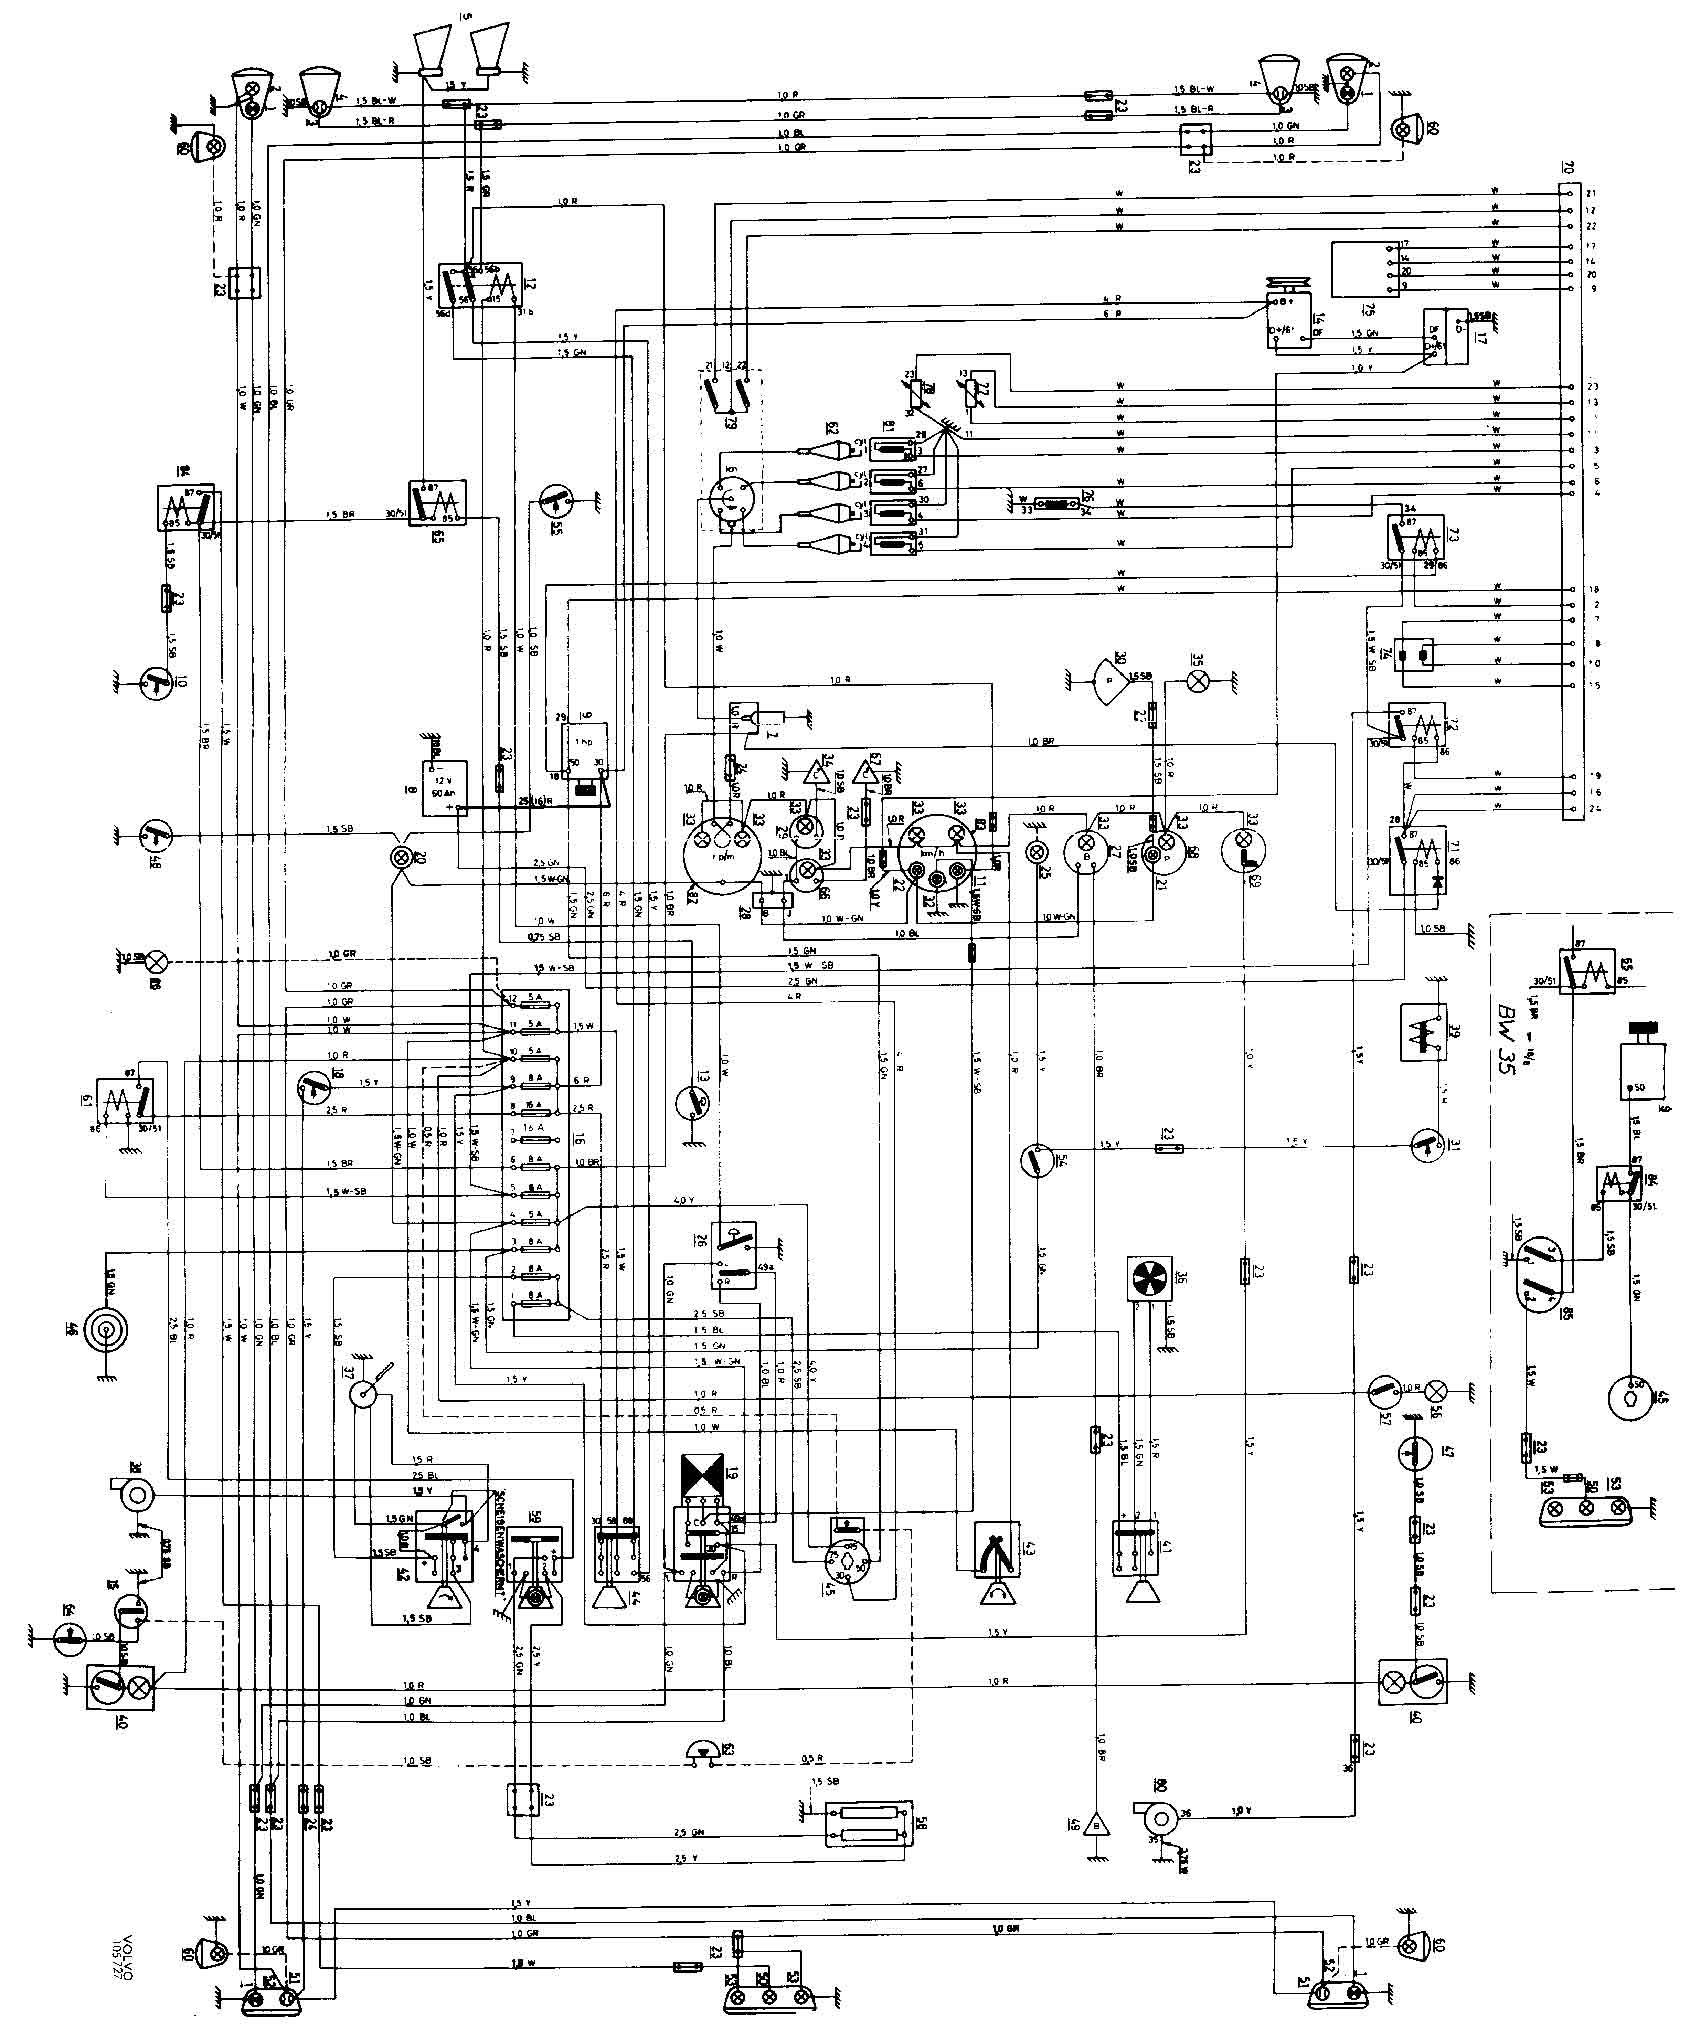 2002 volvo s60 fuse box diagram